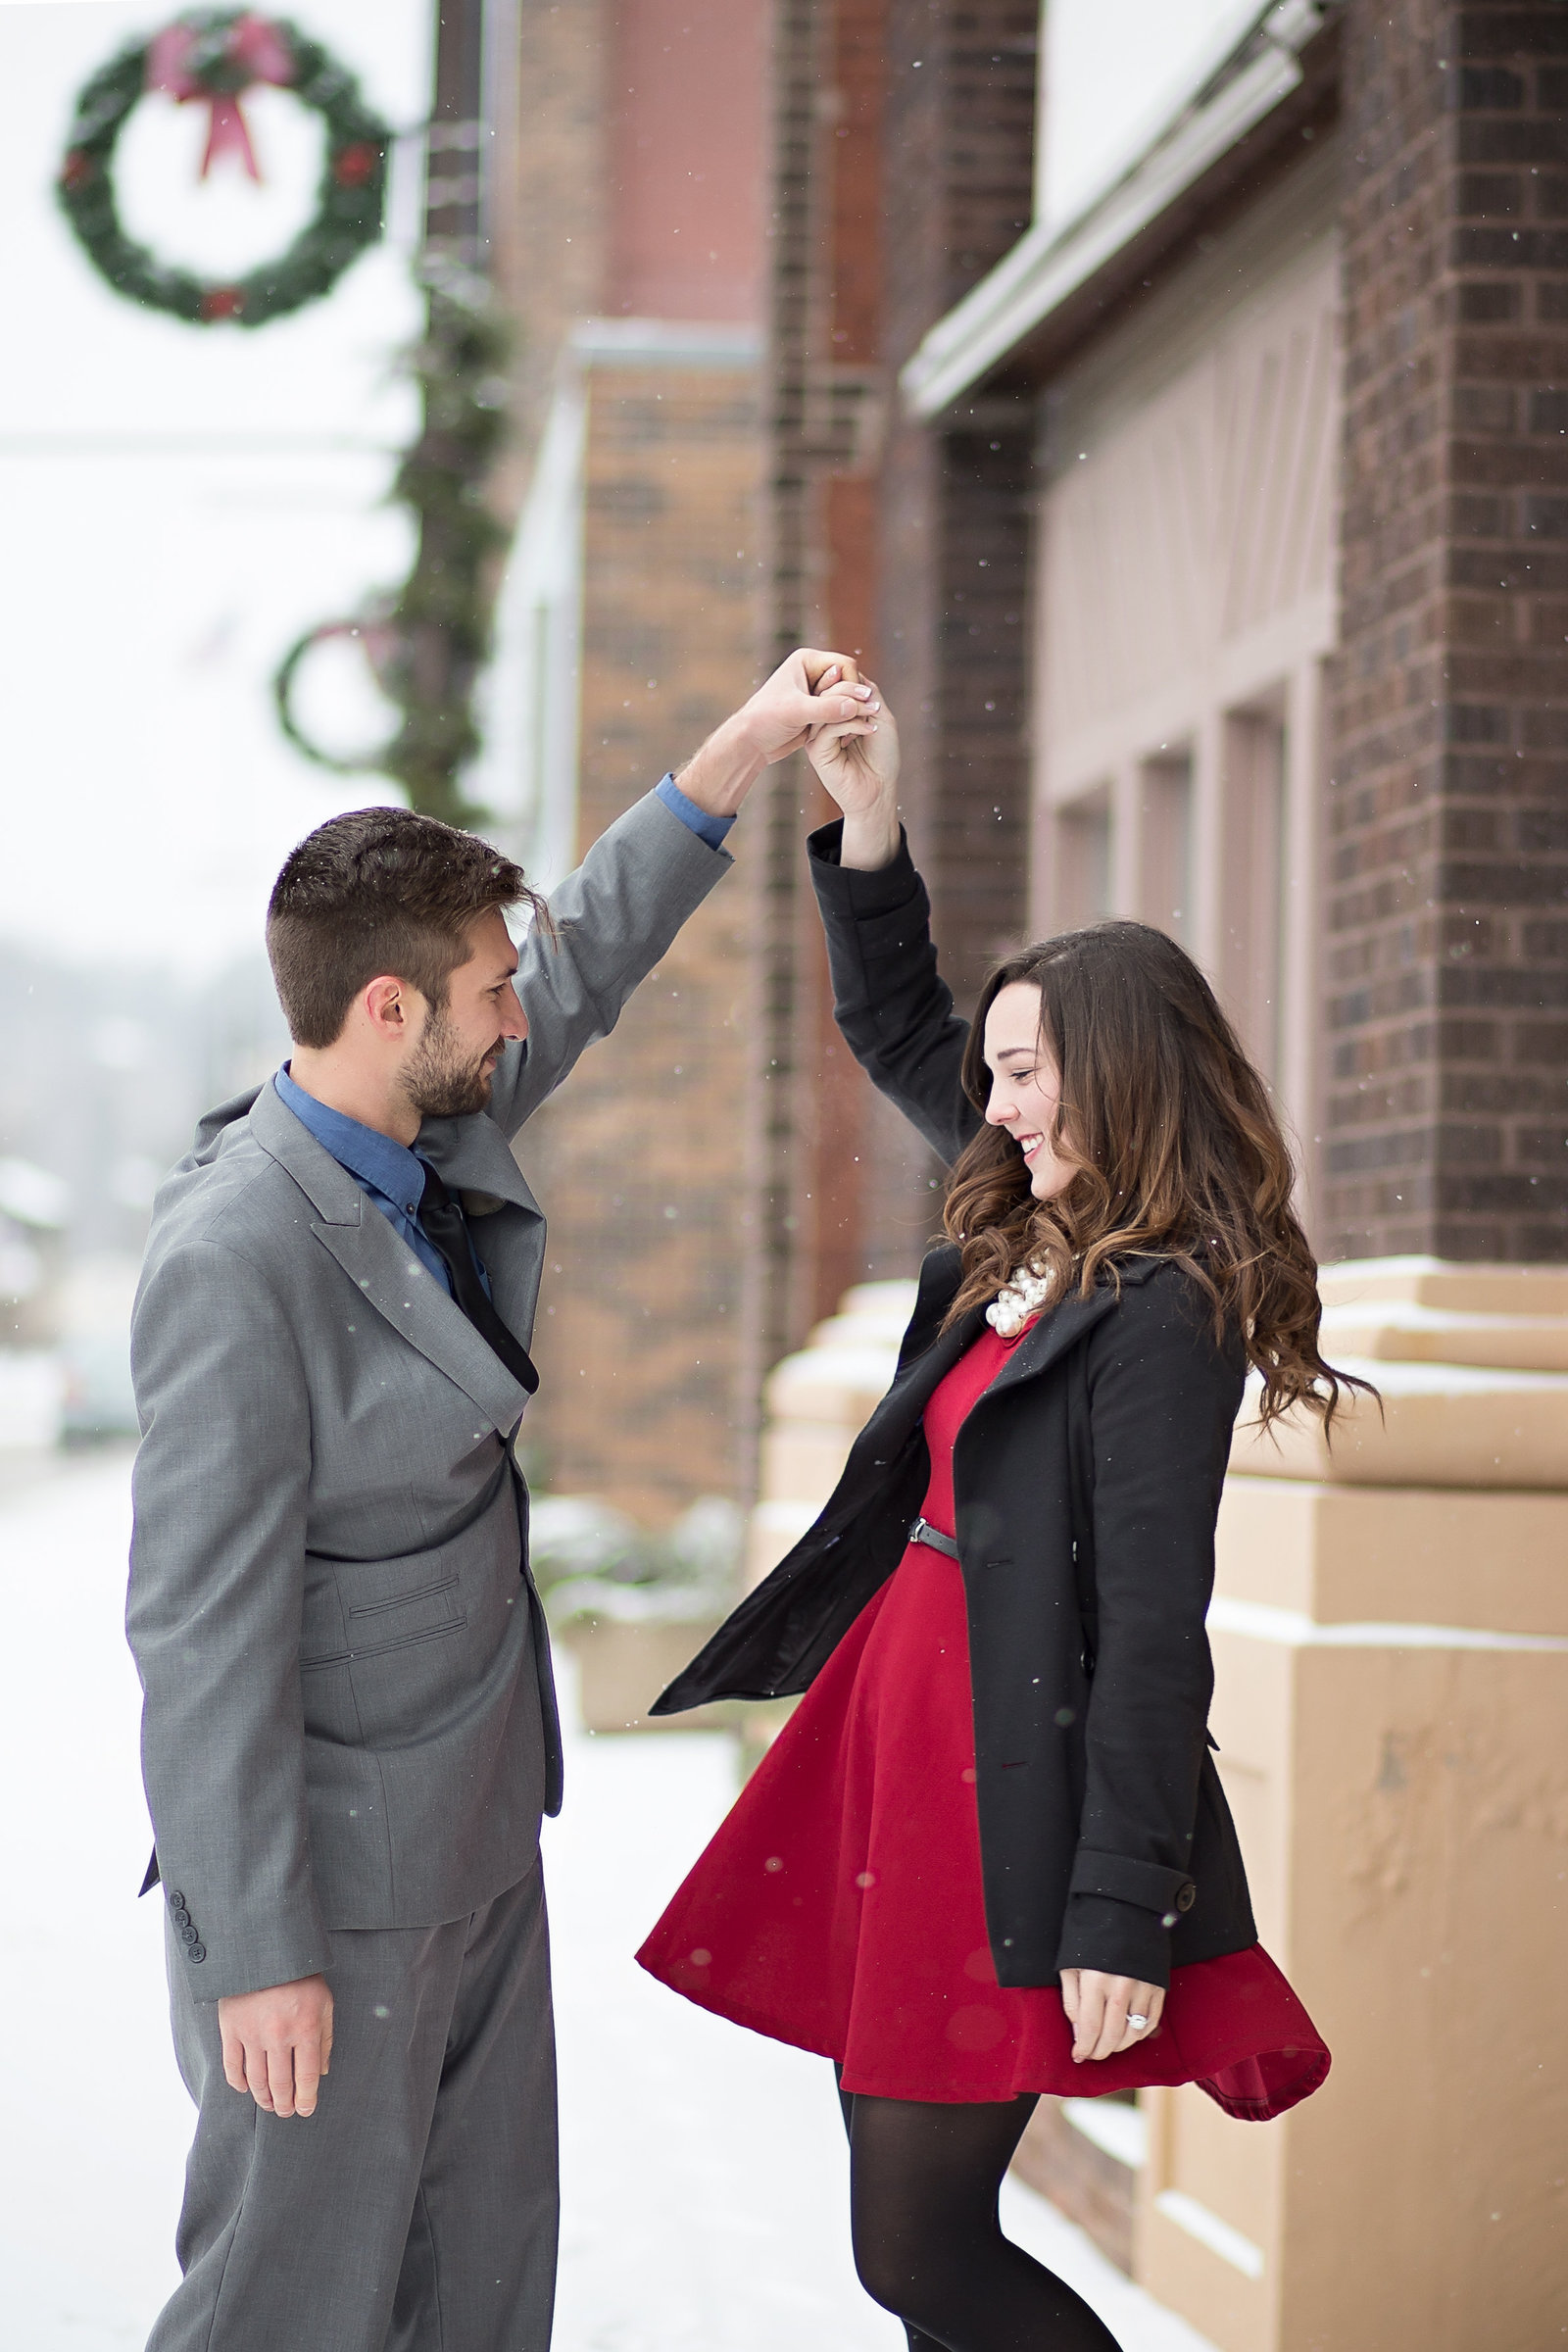 Downtown Iron Mountain engagement and wedding photographer with http://www.photosbyciera.com